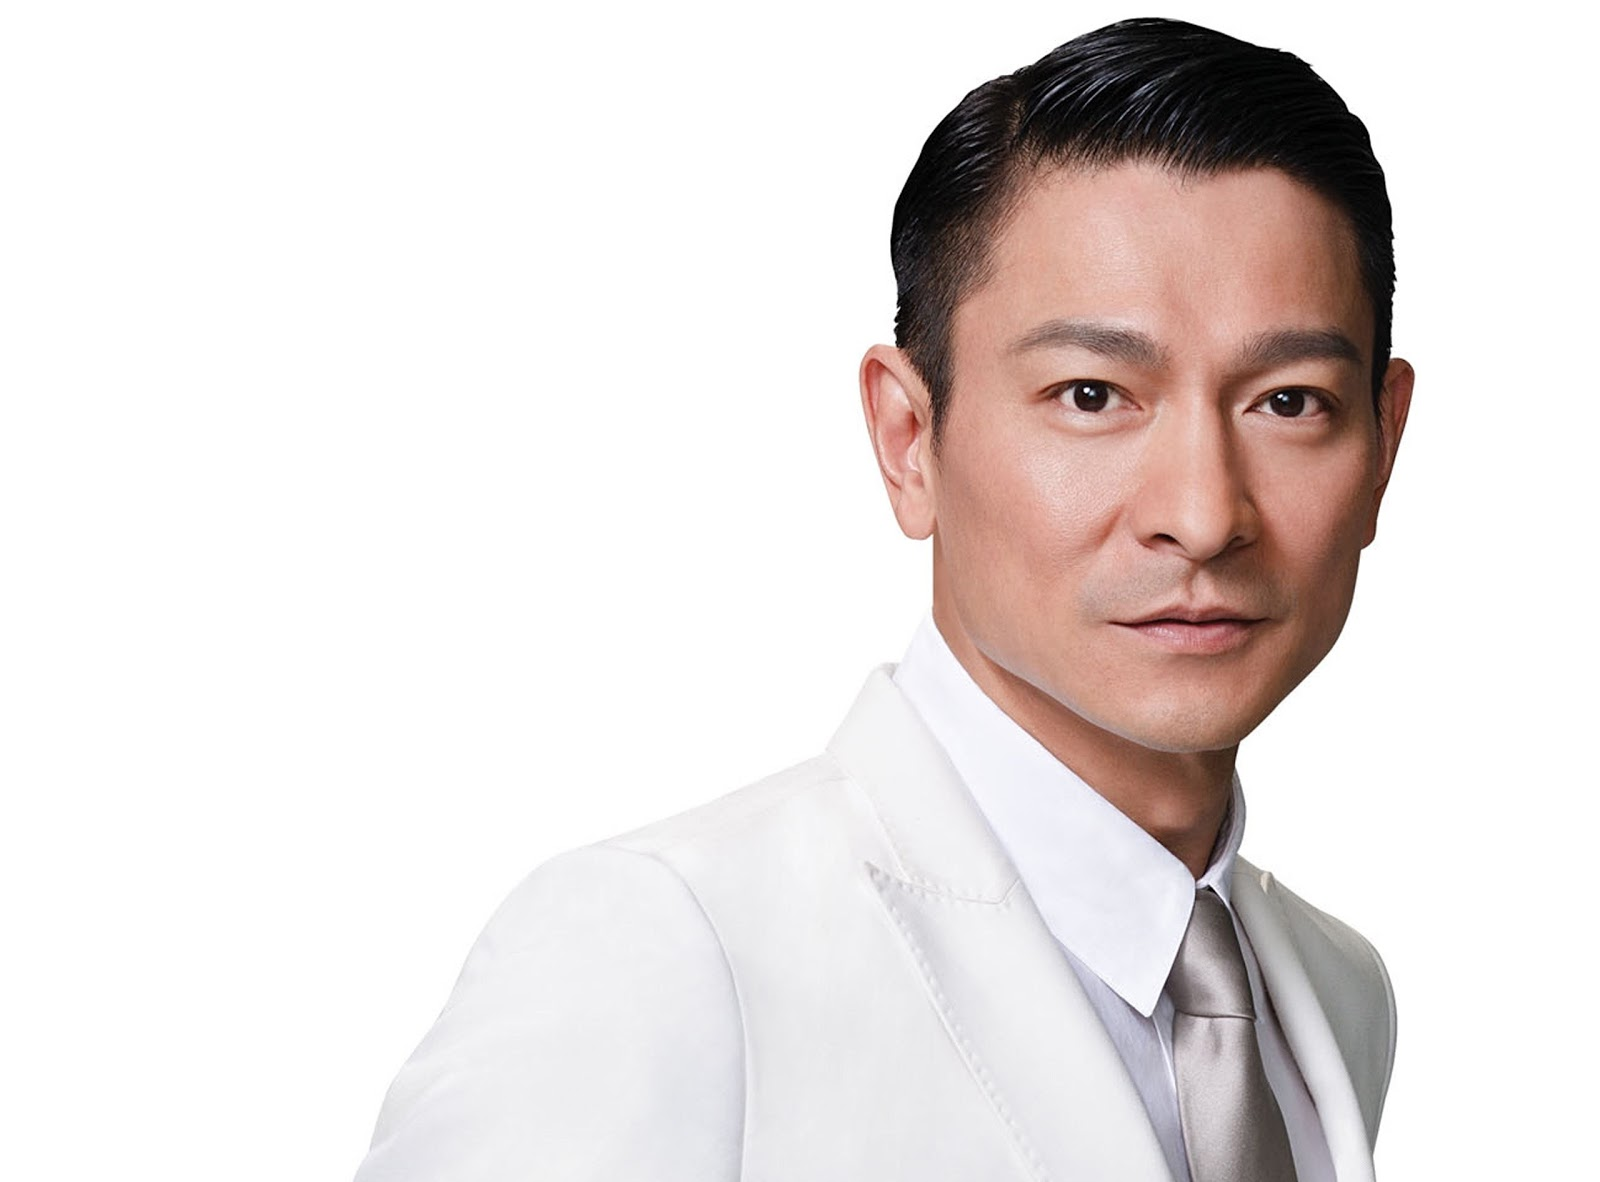 Andy Lau Hd Wallpapers High Definition Free Background